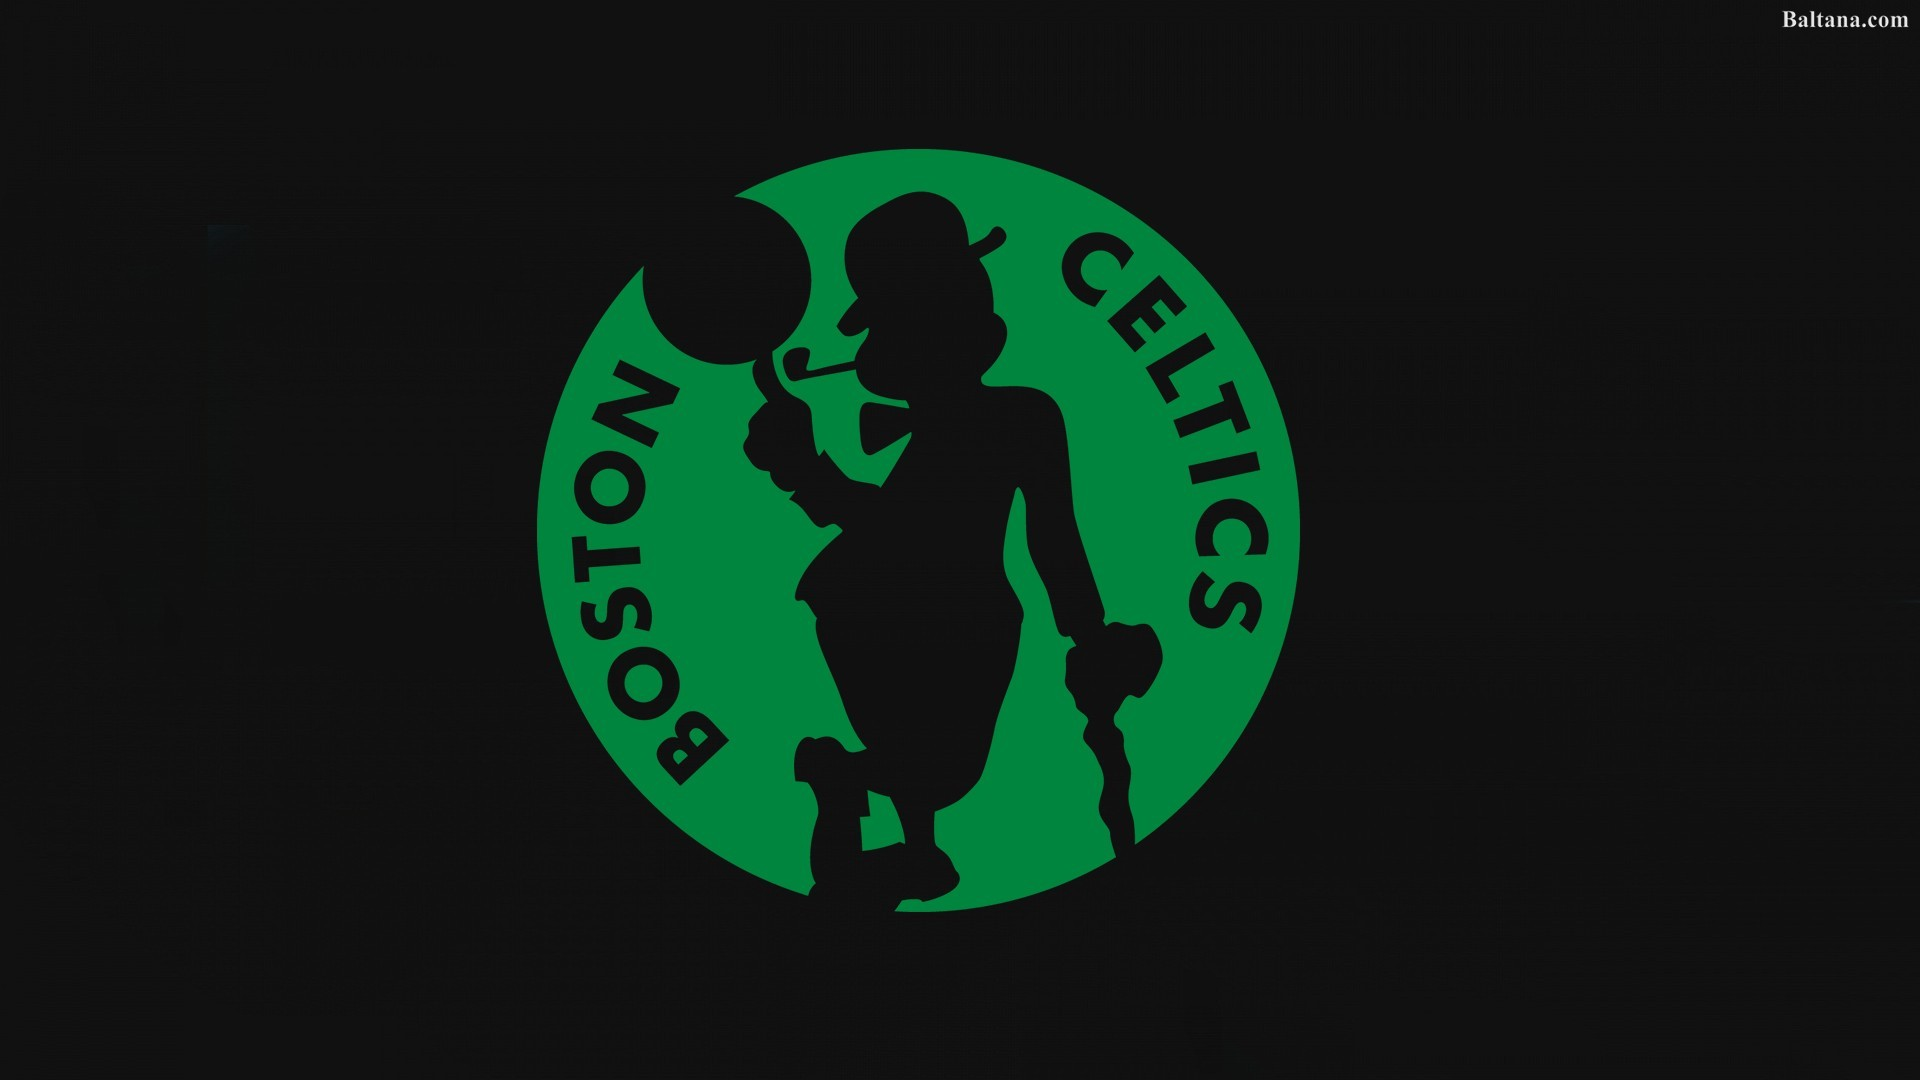 Res: 1920x1080, Boston celtics wallpaper Gallery| Beautiful and Interesting  Images,Vectors,Coloring,Cliparts |Free Hd wallpapers